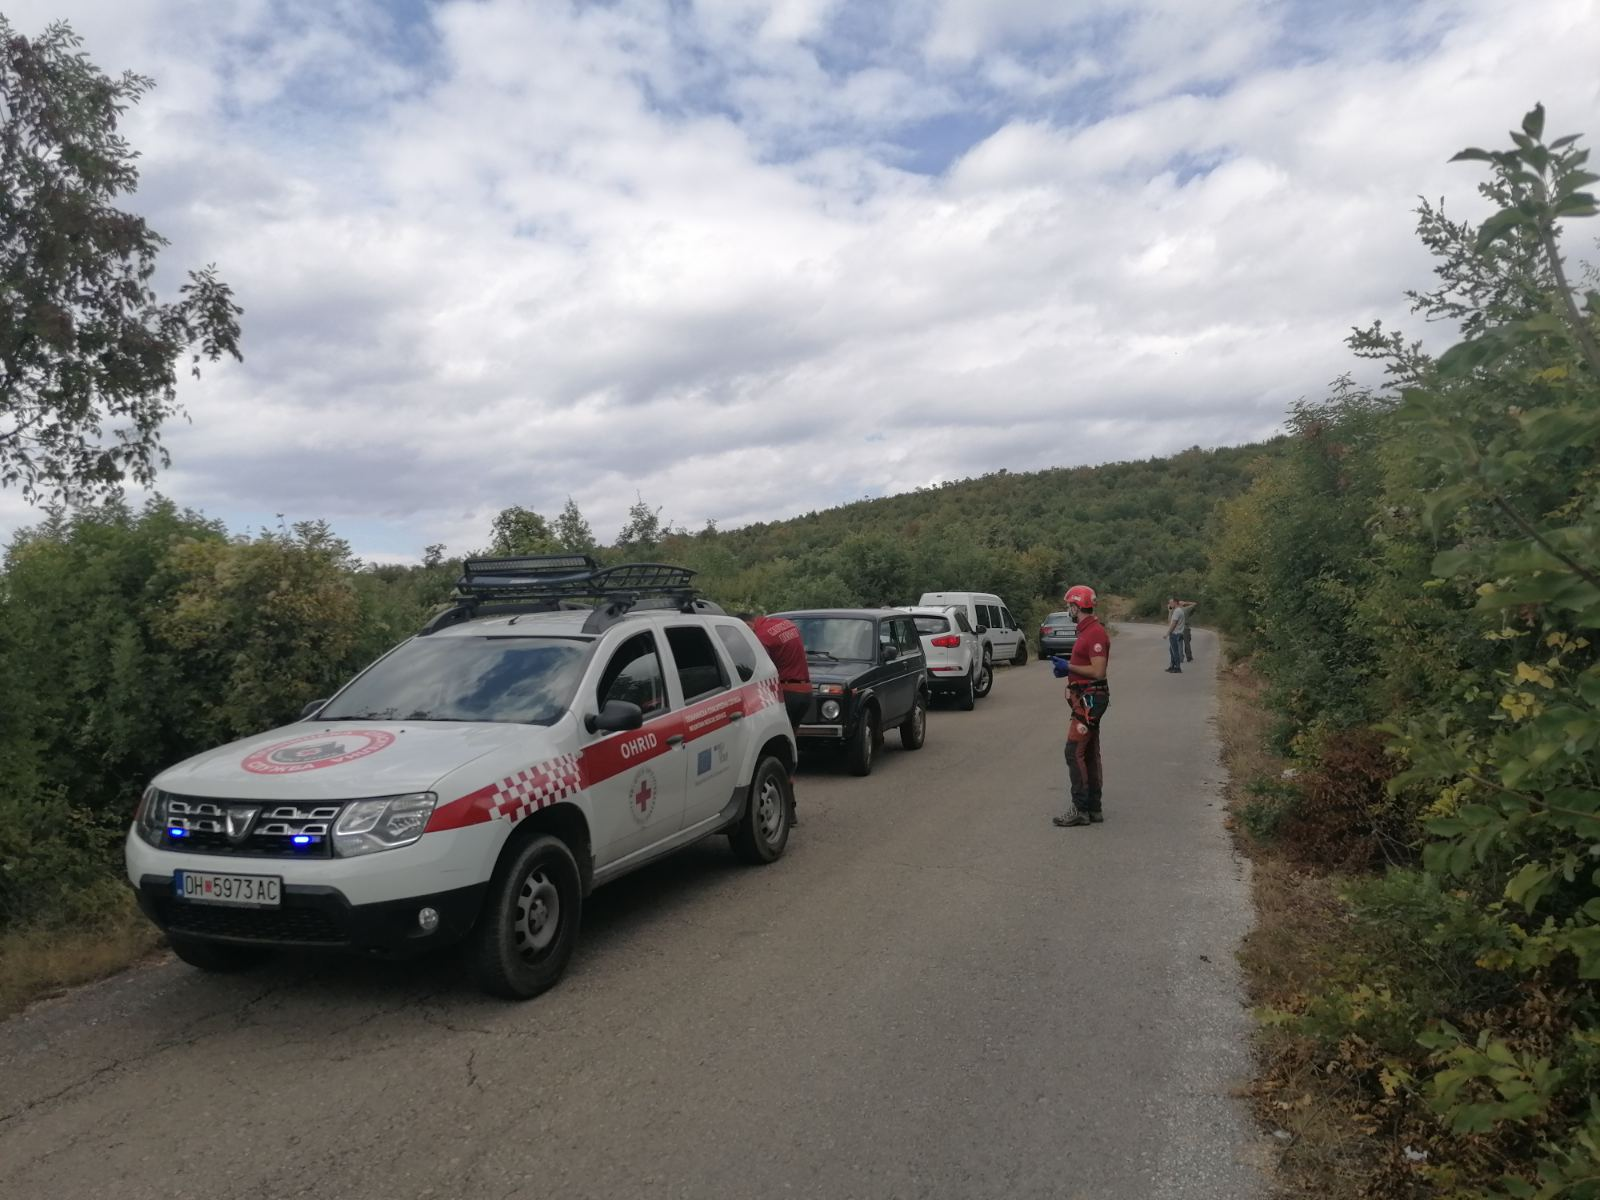 A tragic accident on Galichica mountain